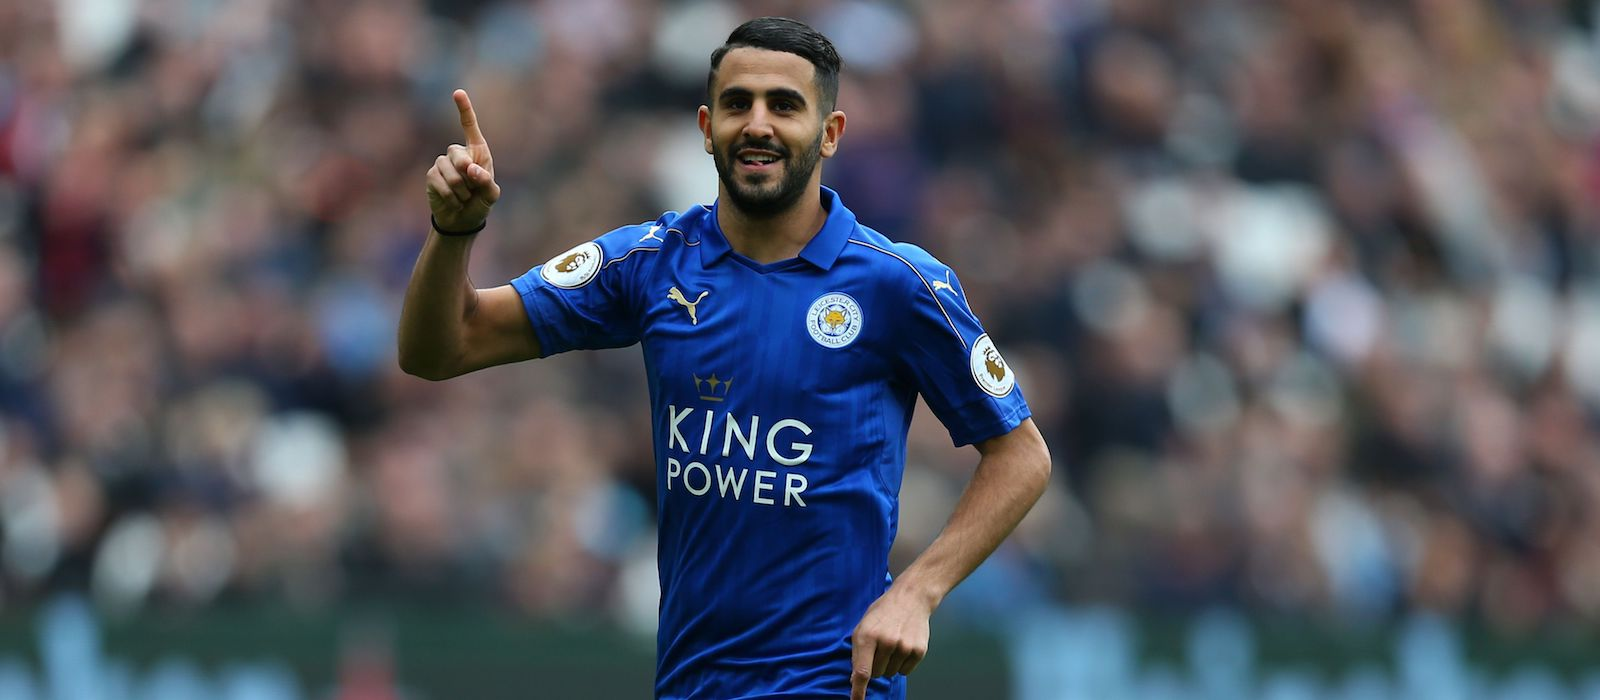 Jose Mourinho wants to bring Riyad Mahrez to Manchester United – report